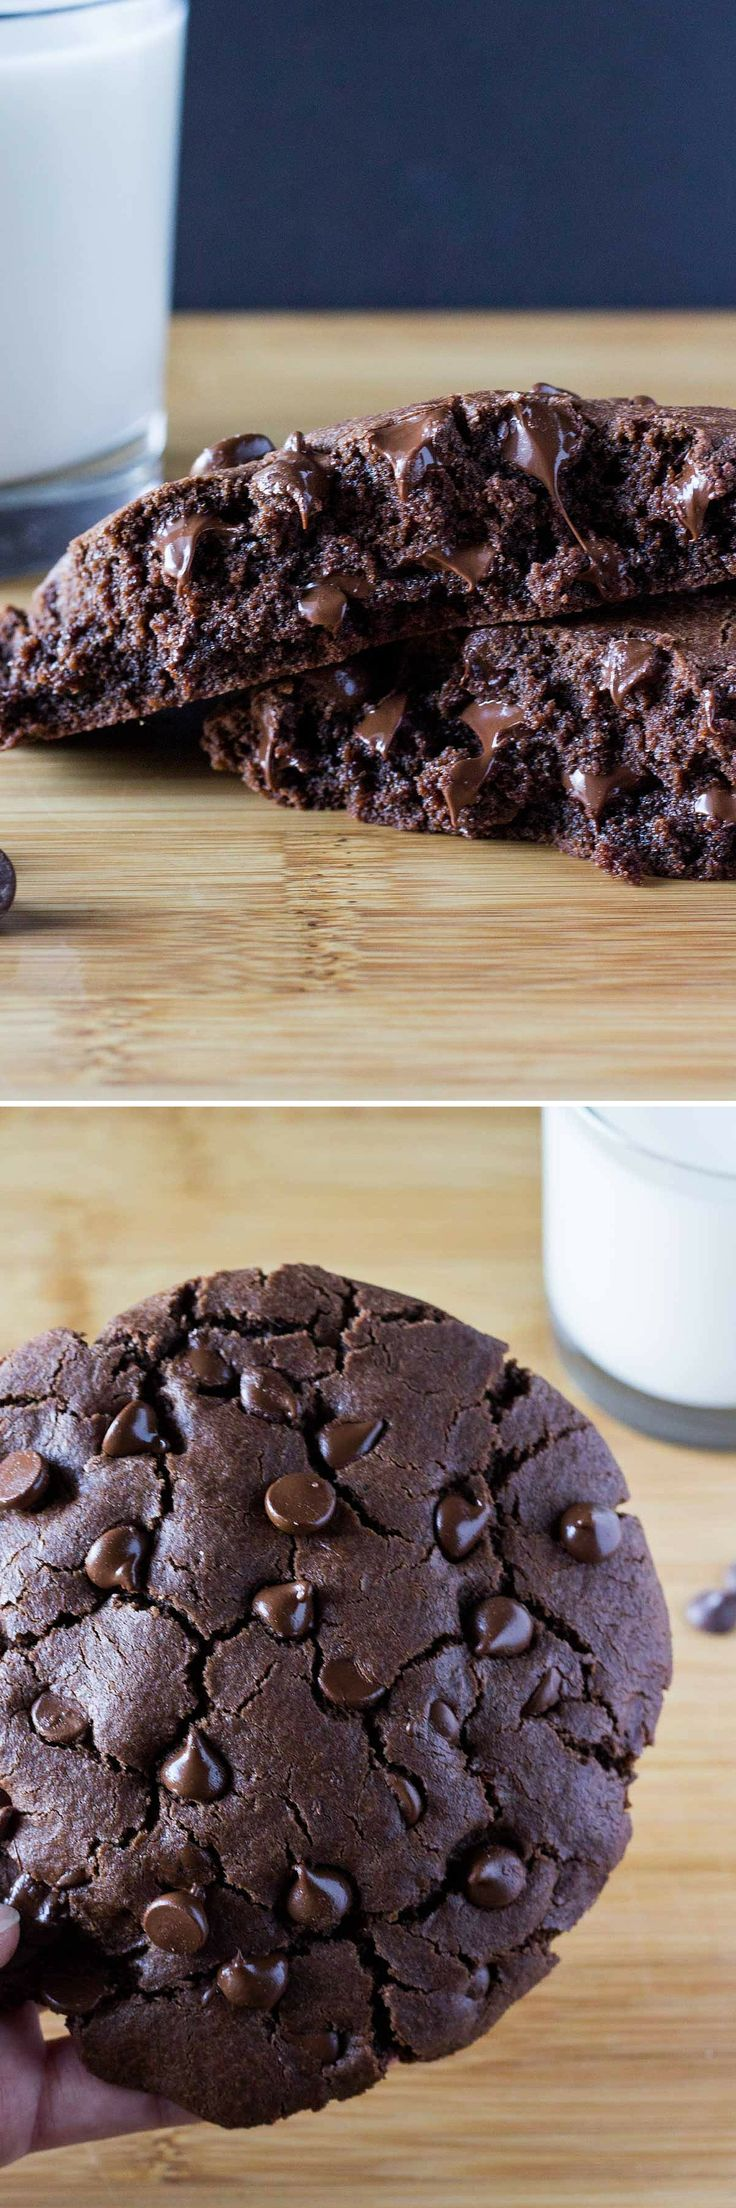 One XXL Giant Double Chocolate Cookie. It's thick, fudgy, oozing with melted chocolate, super easy to make and perfect for those late night cravings.